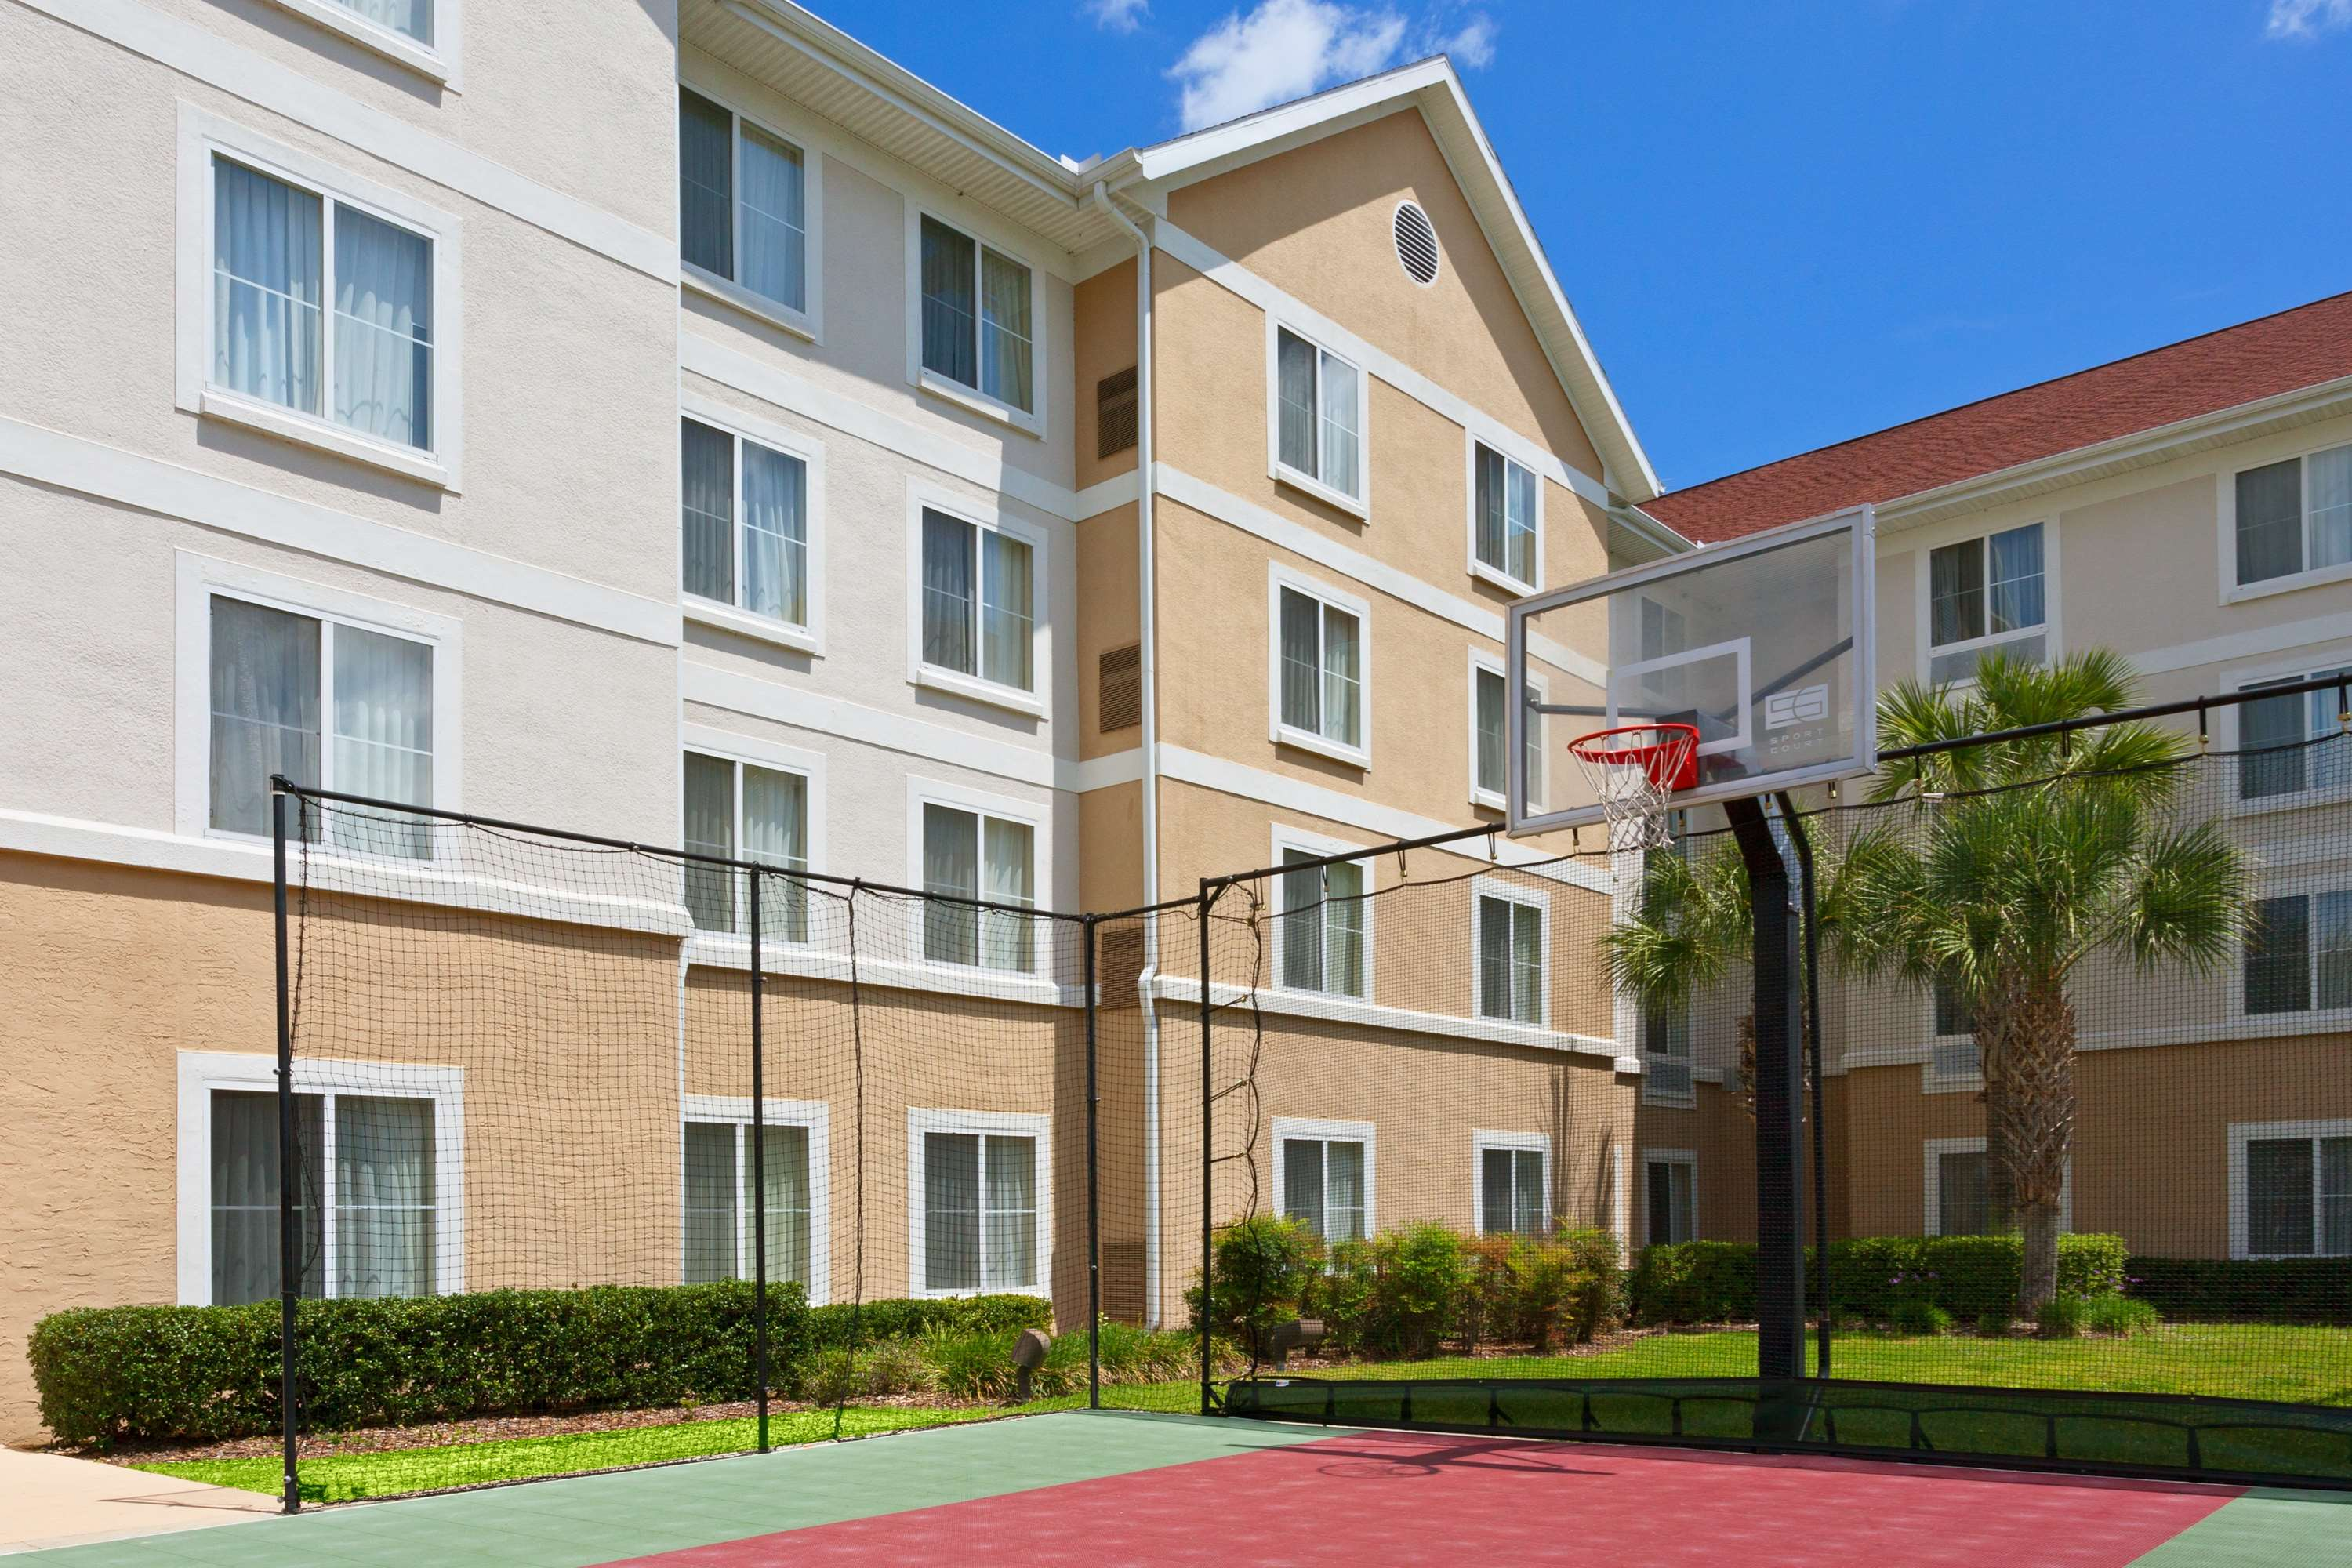 Homewood Suites by Hilton Gainesville image 11